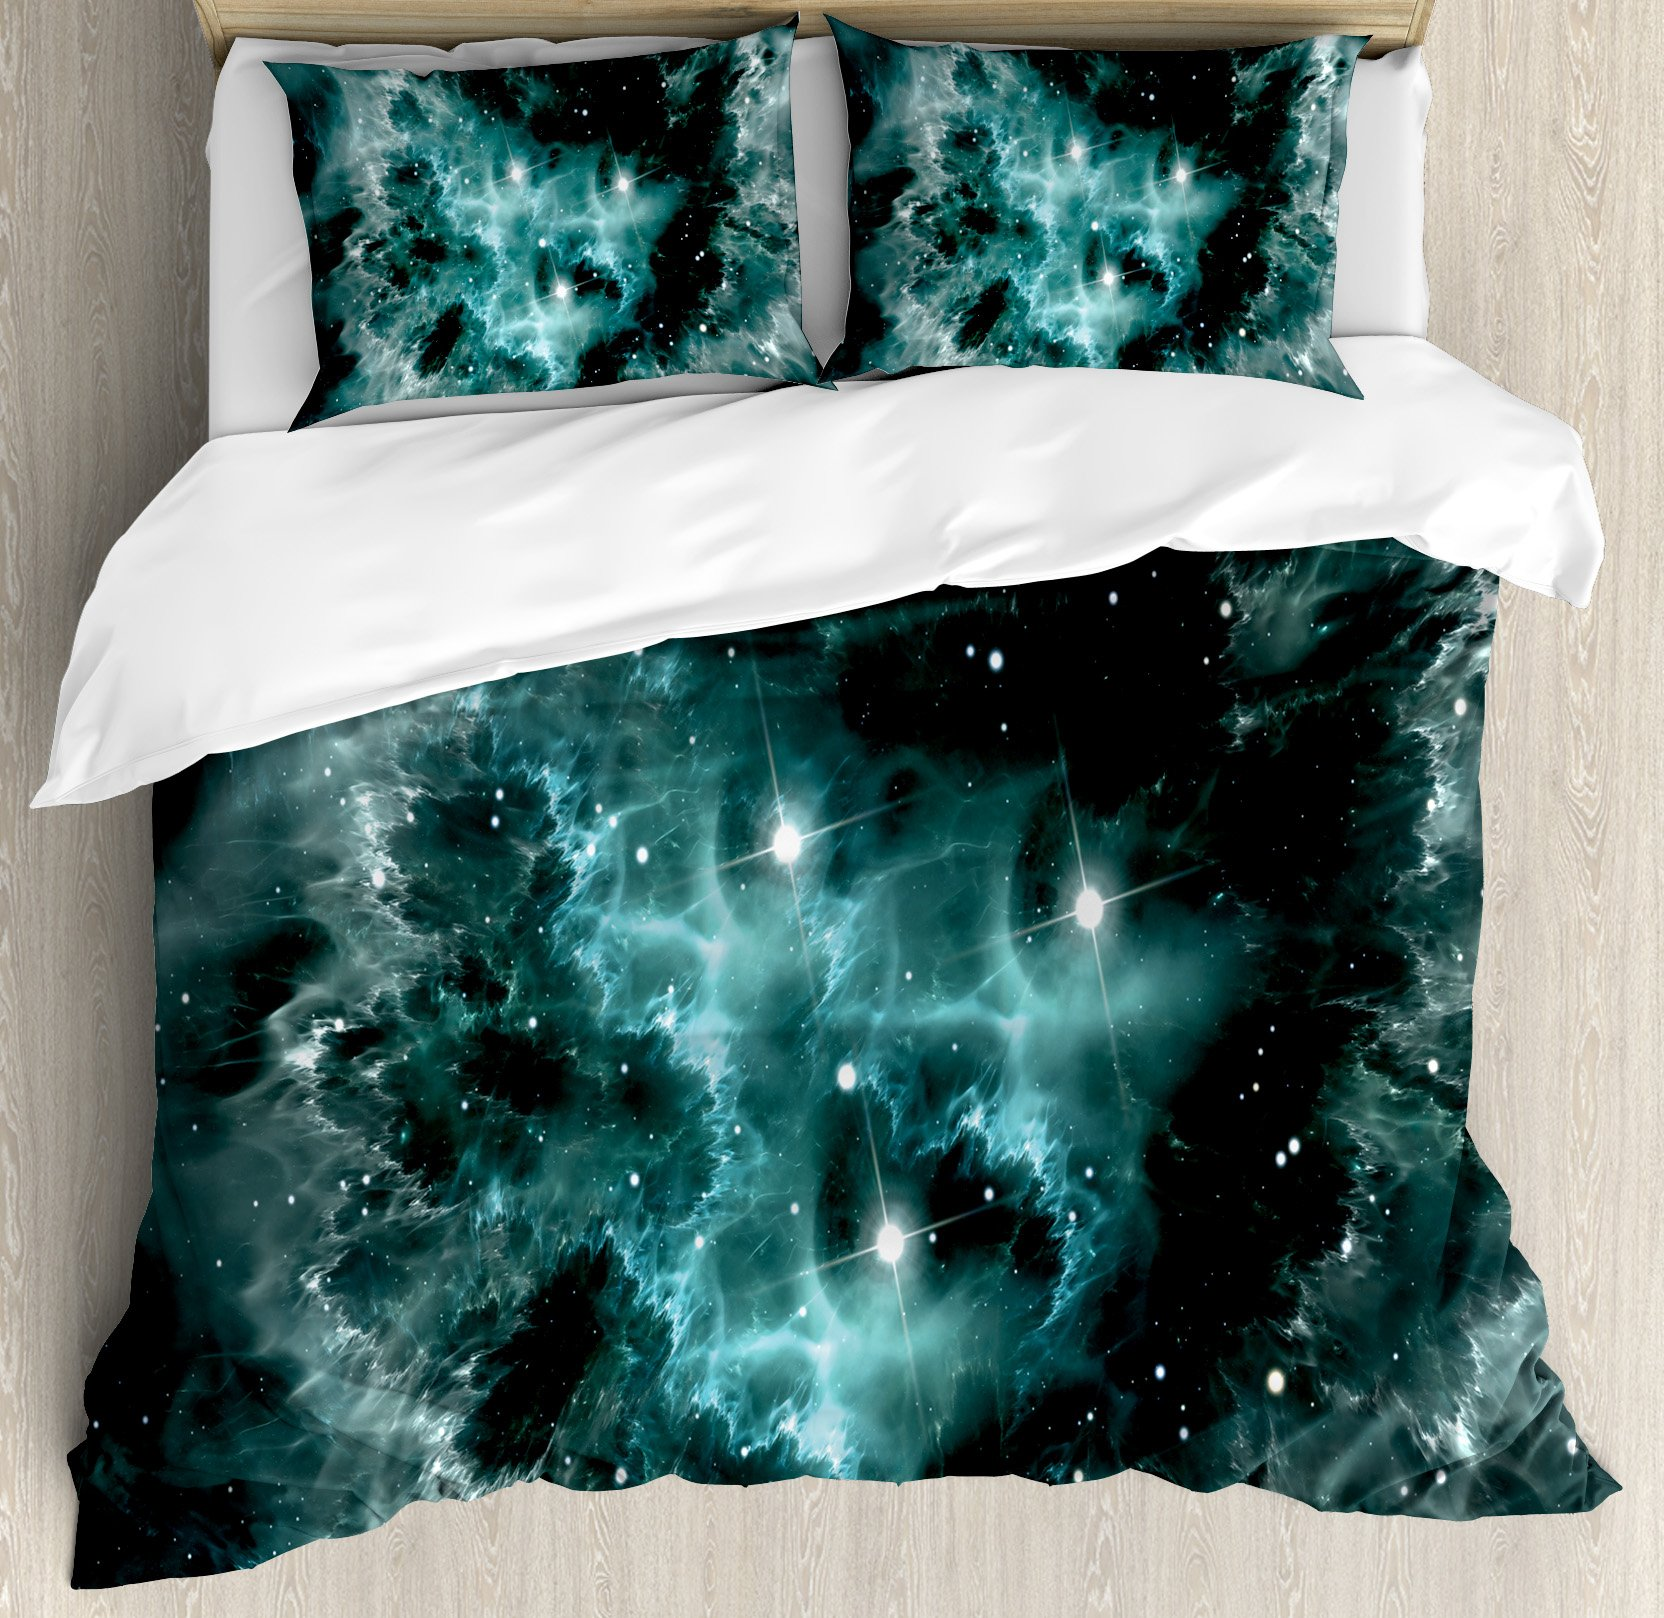 Outer Space Duvet Cover Set Queen Size by Ambesonne, Space Nebula in the Space with Crystal Star Cluster Galaxy Solar System Cosmos Print, Decorative 3 Piece Bedding Set with 2 Pillow Shams, Teal